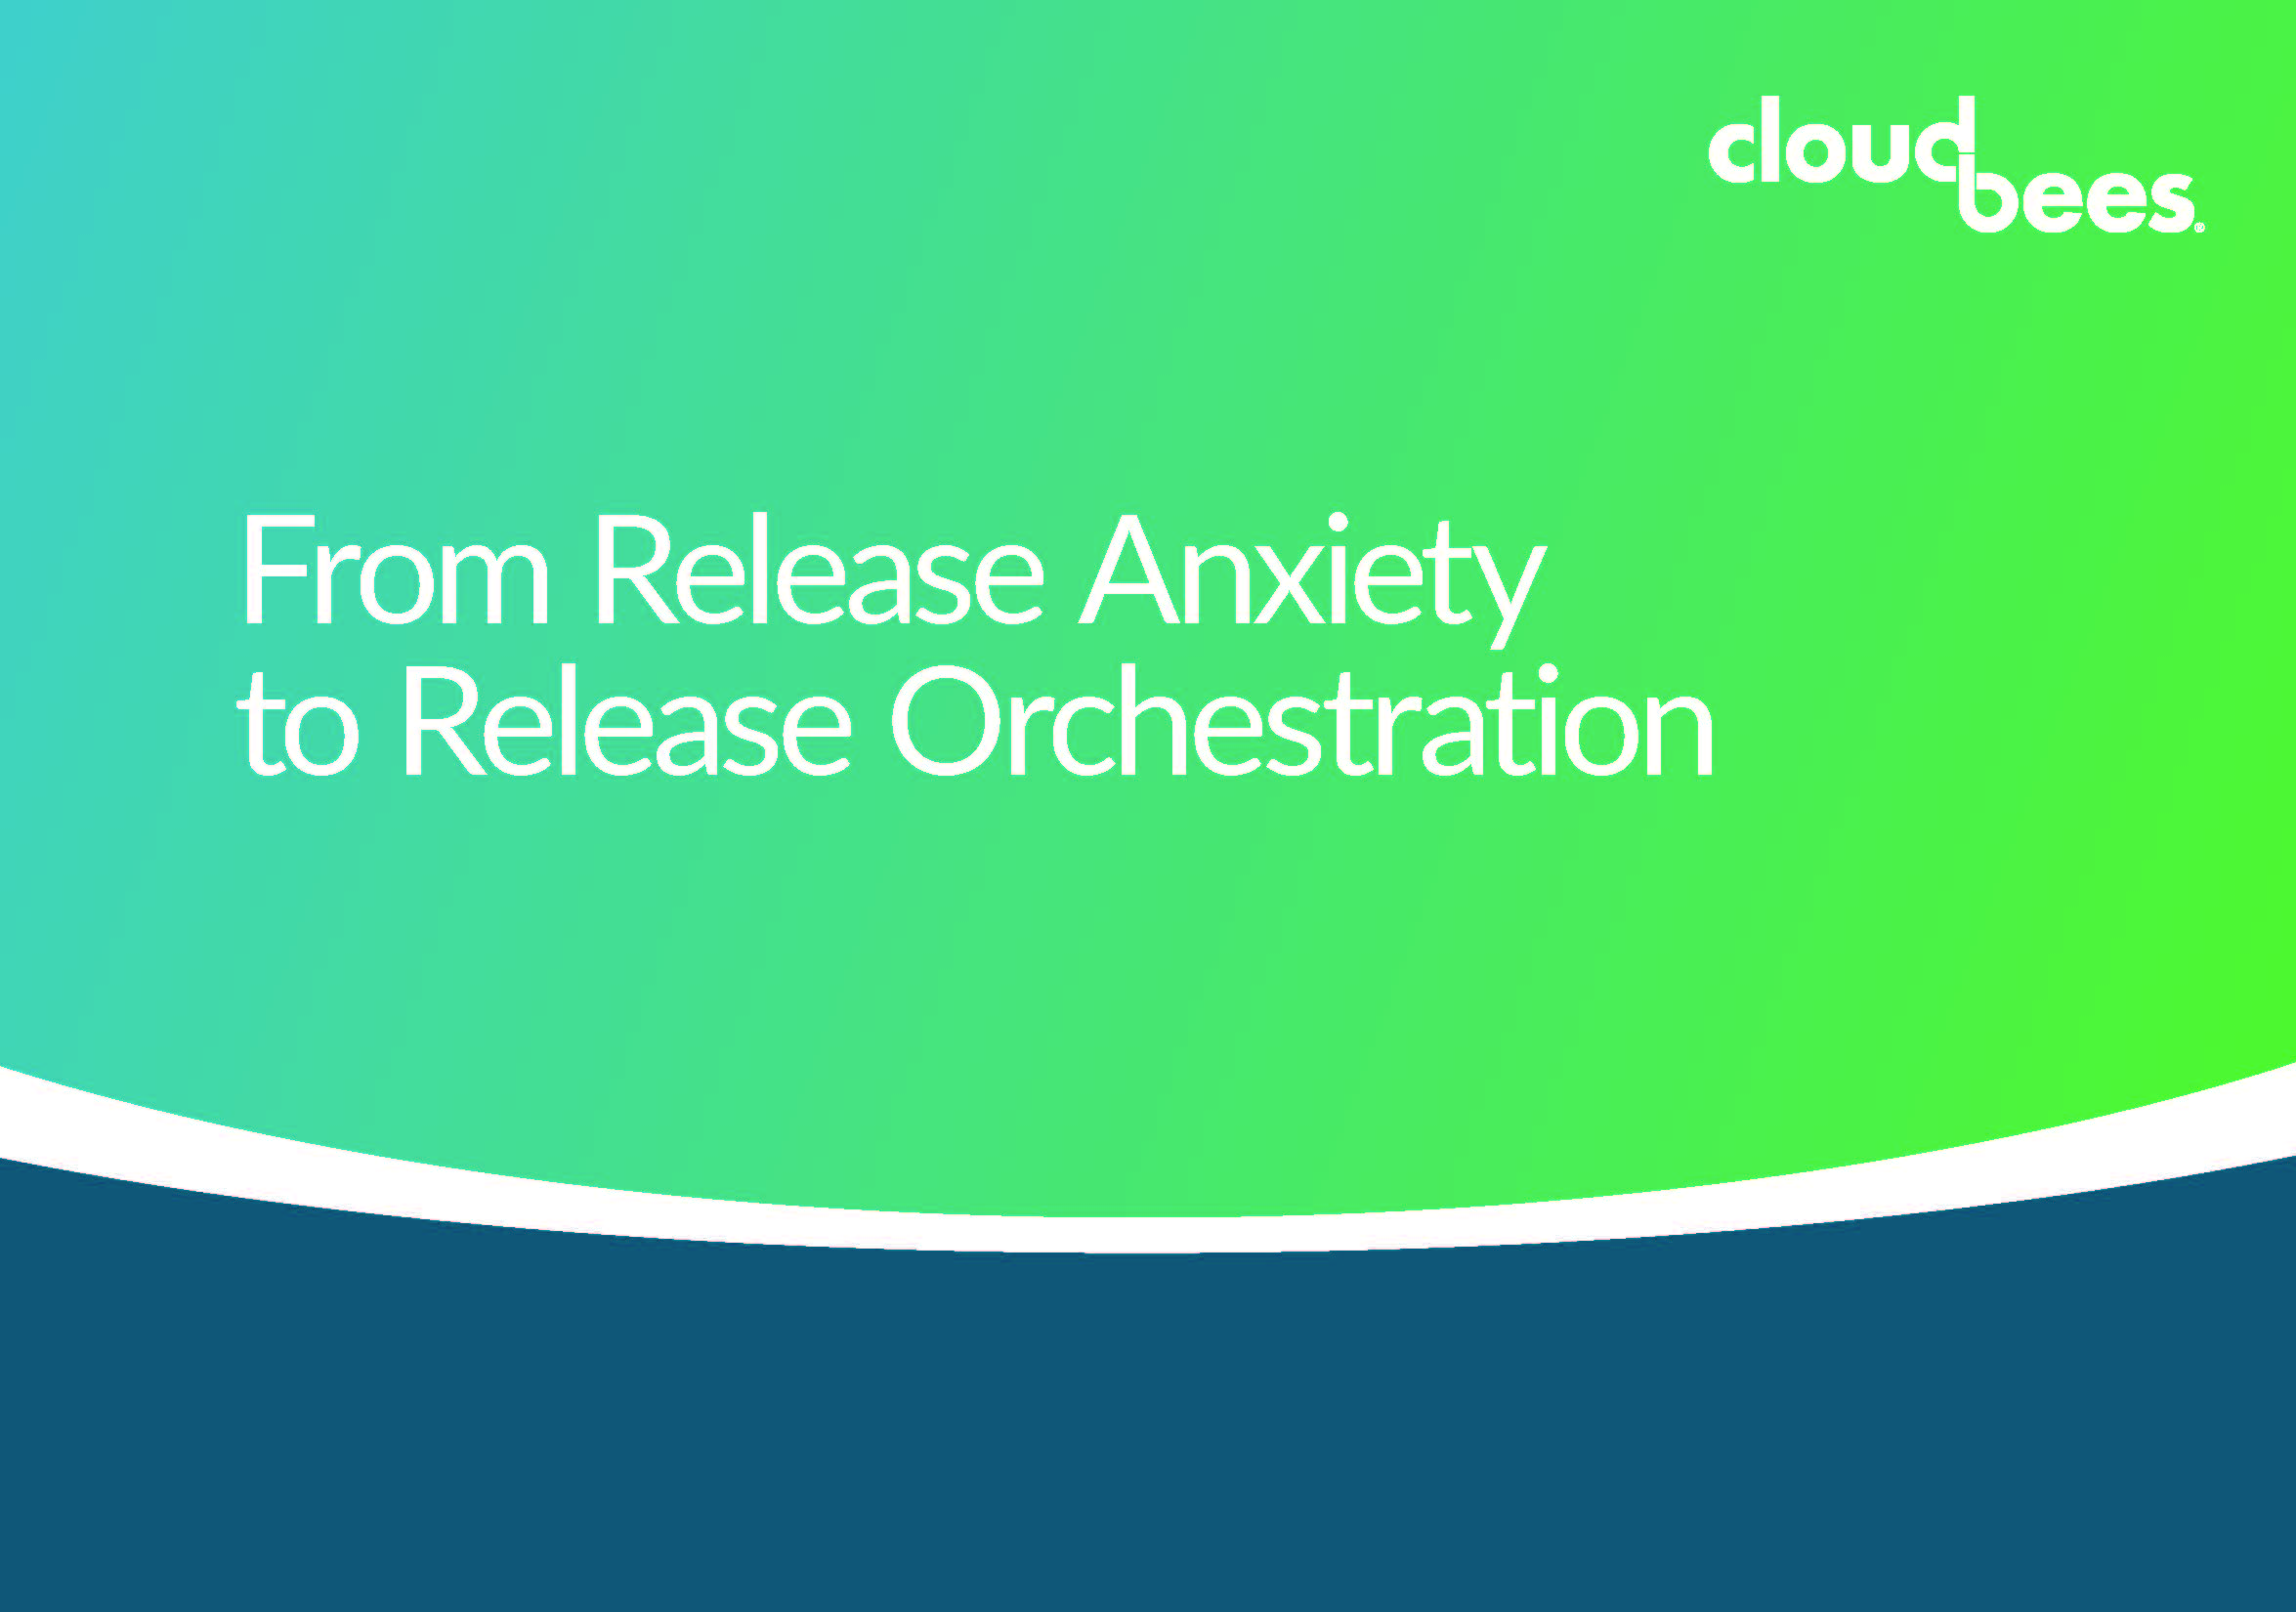 From-Release-Anxiety-to-Release-Orchestration